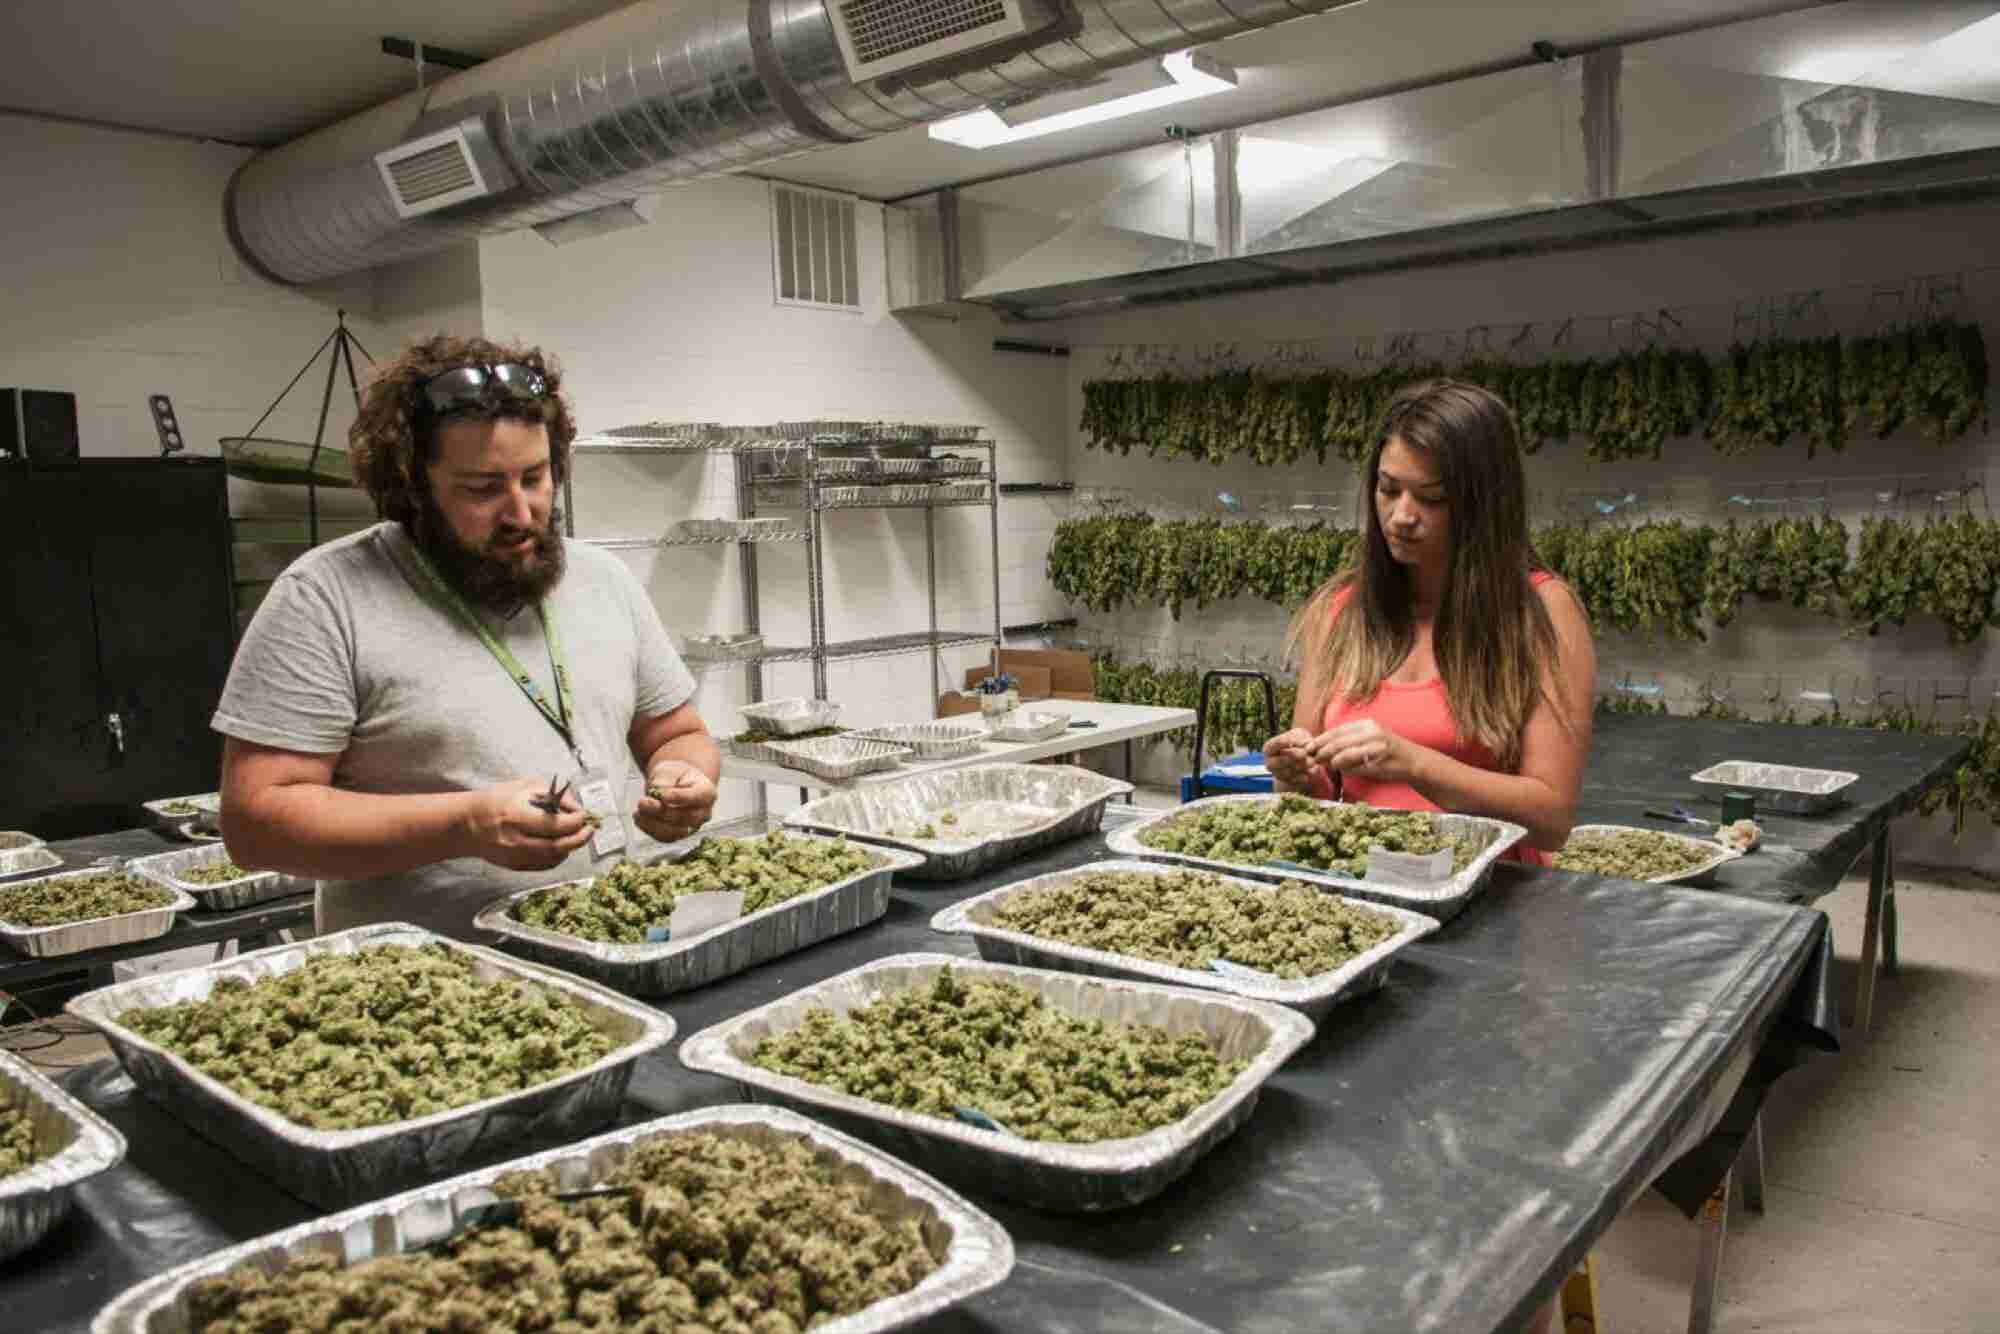 Is Your Cannabis Business Properly Licensed?